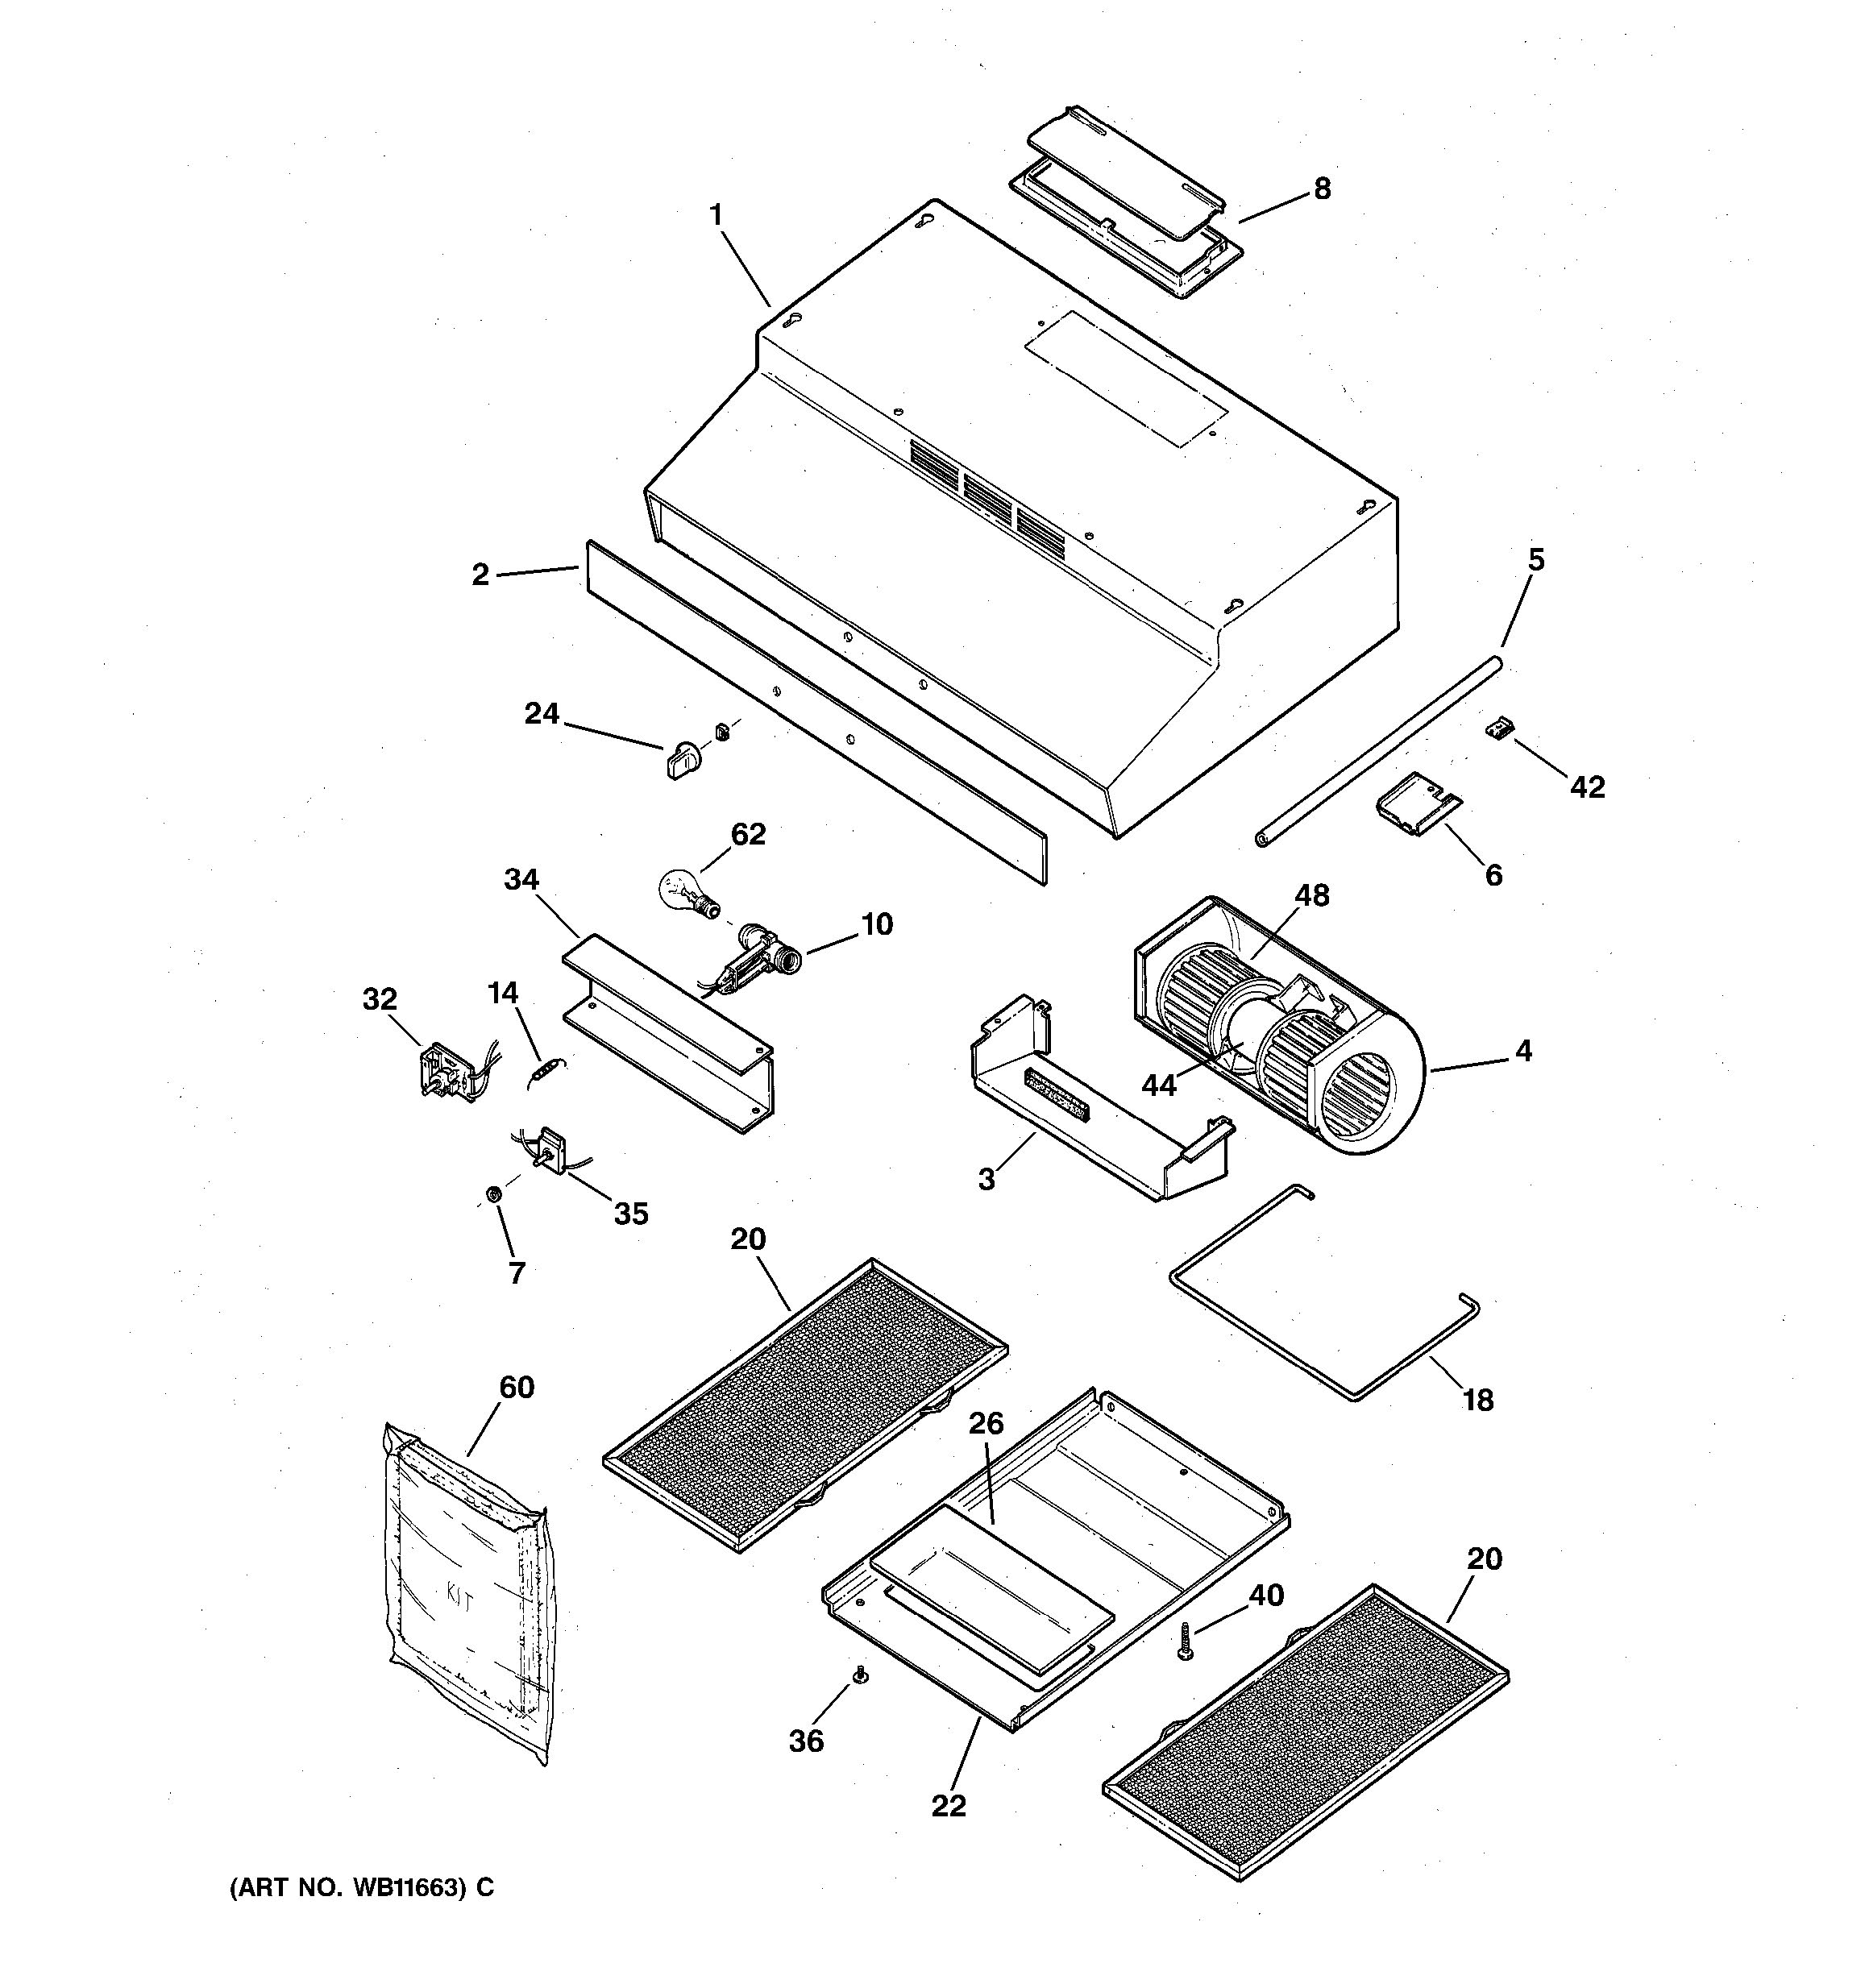 assembly view for range hood parts